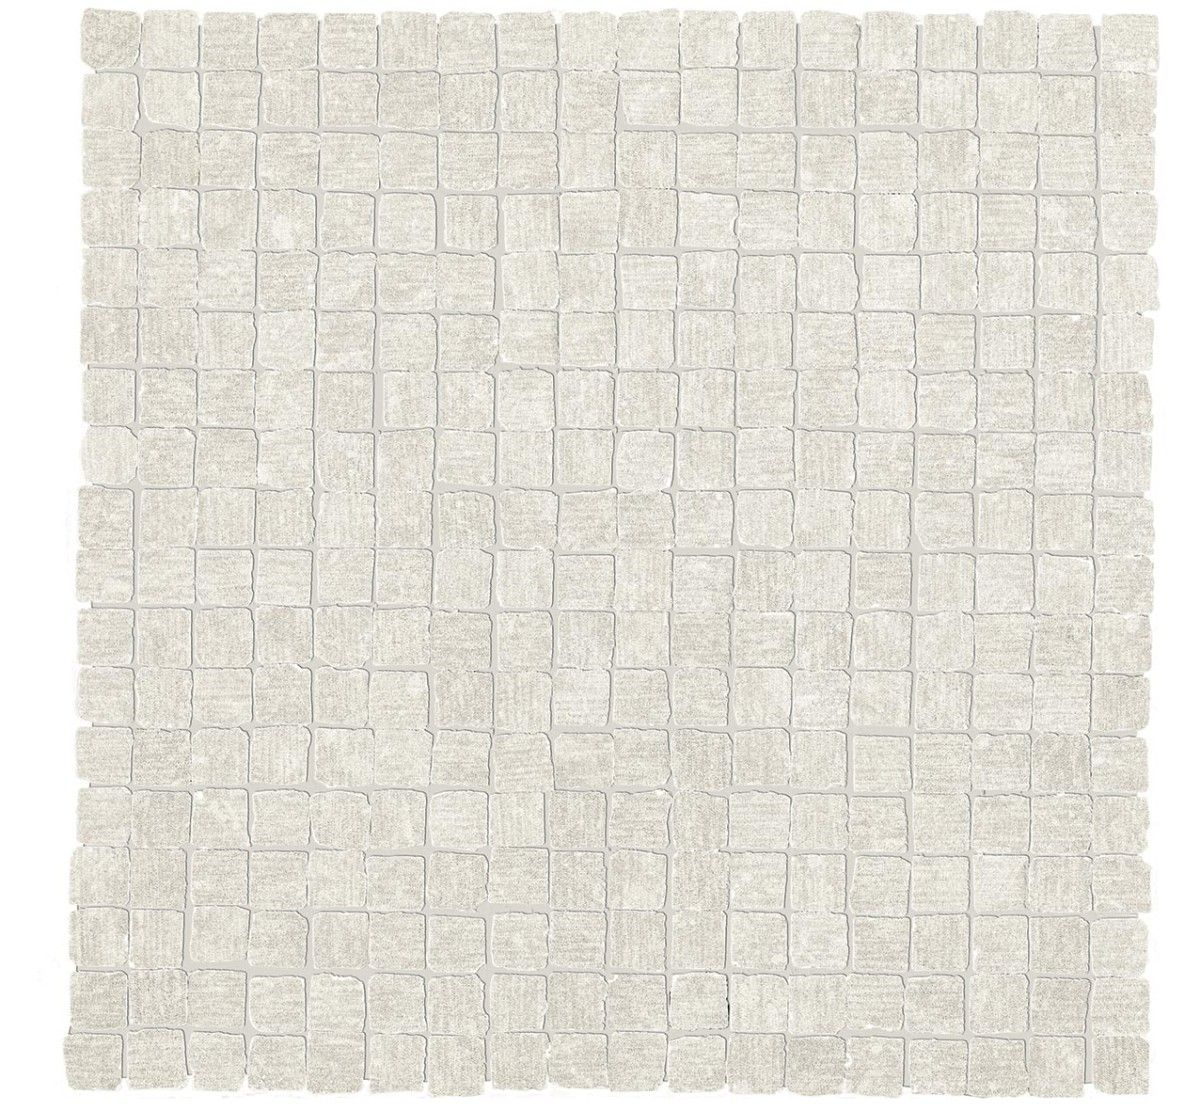 #MORE #Polished #Rectified 5/8-inch #Mosaic in #Bianco from #MidAmericaTile